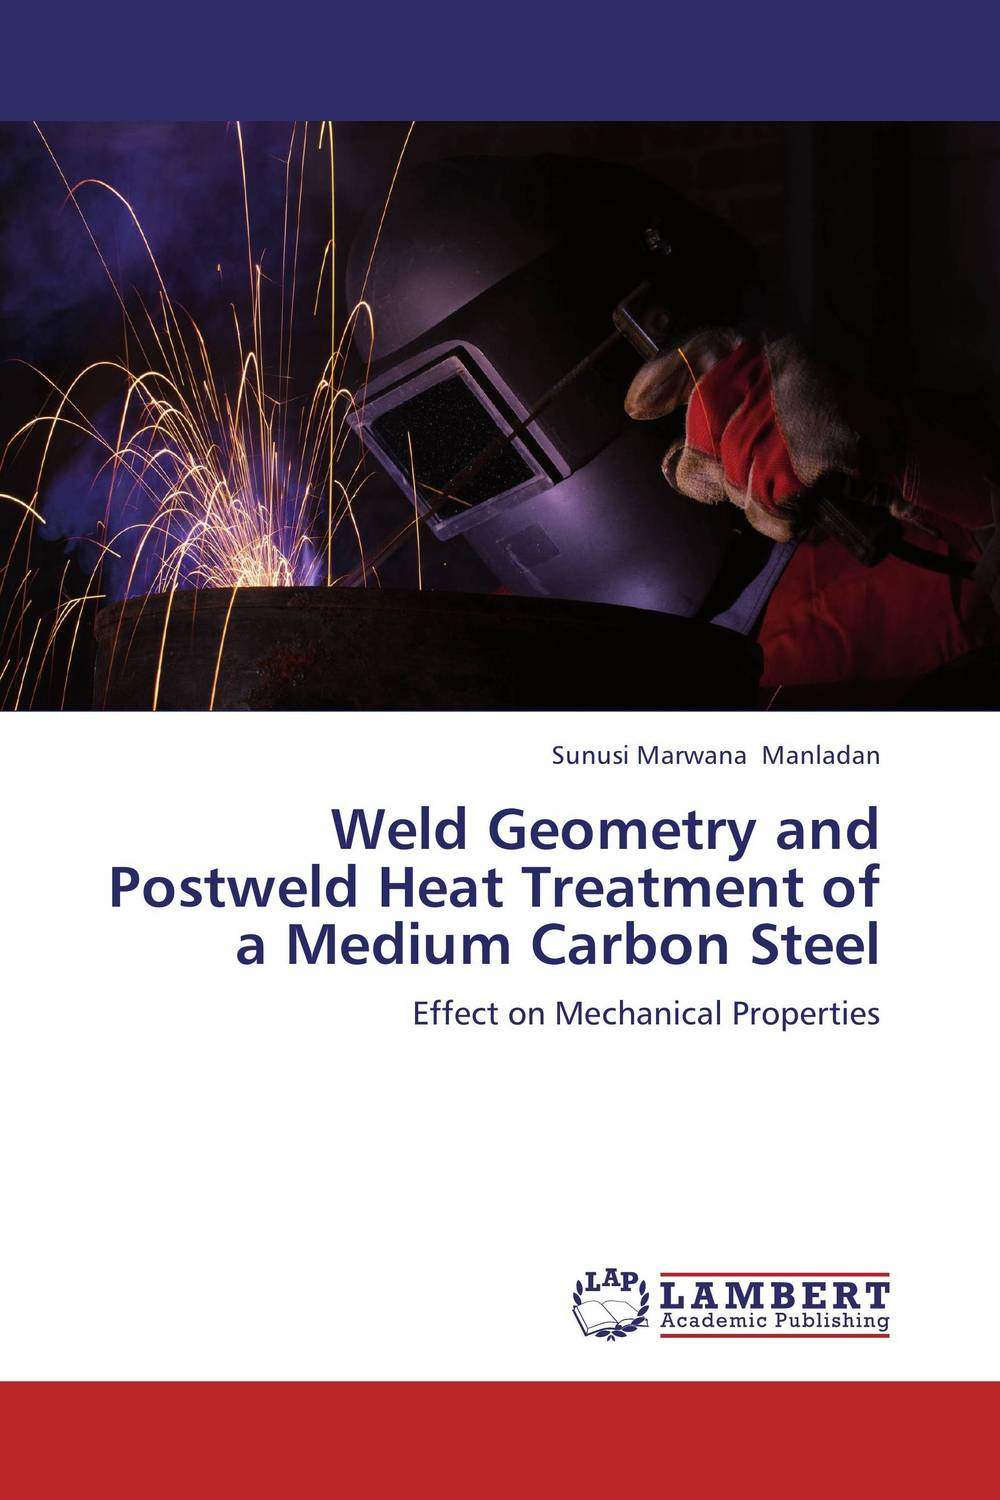 Weld Geometry and Postweld Heat Treatment of a Medium Carbon Steel laser beam welding of stainless steels